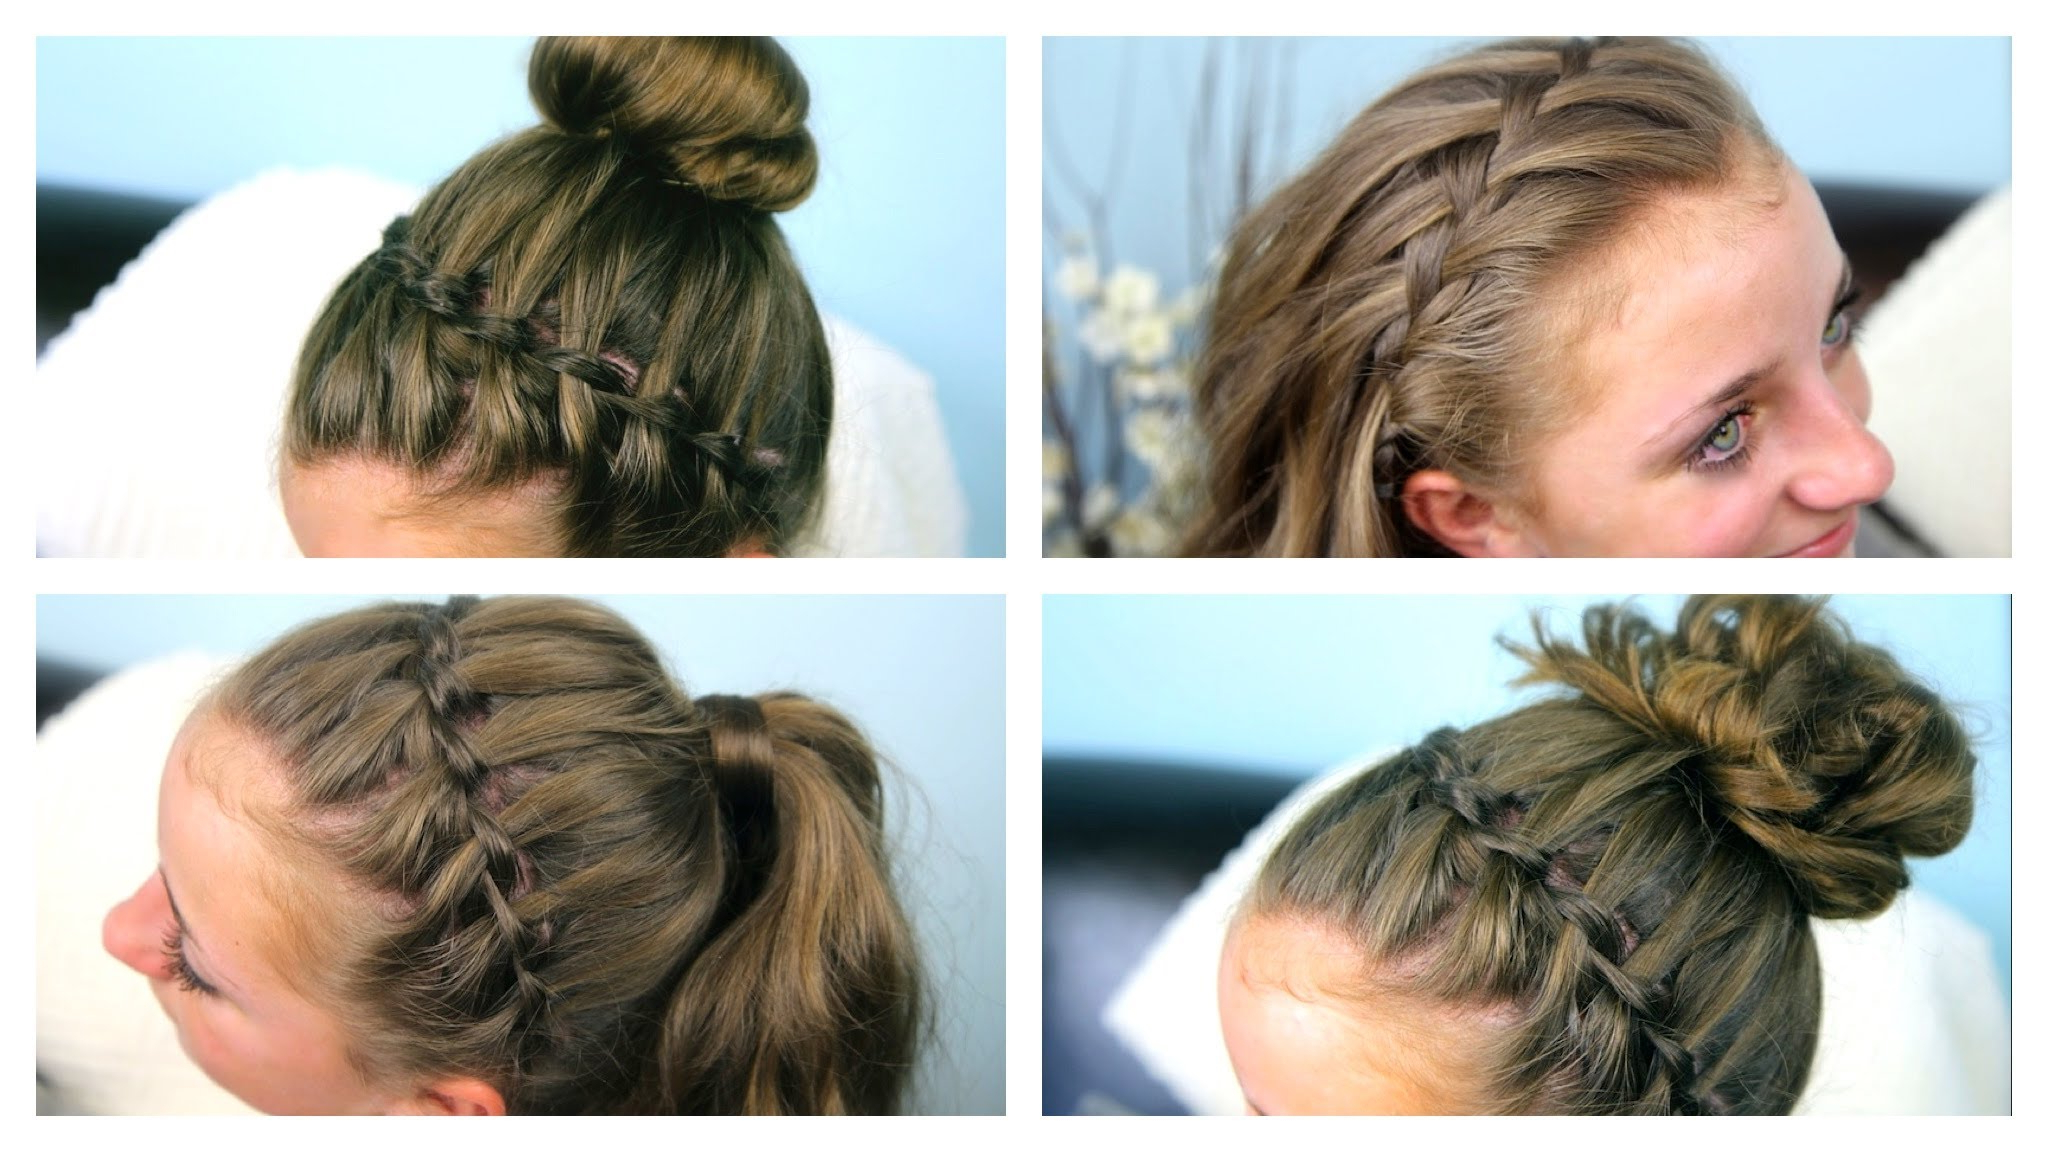 Adorable Formal Hairstyle For Kids, The Waterfall Braid Intended For Well Known High Waterfall Braid Hairstyles (View 13 of 20)